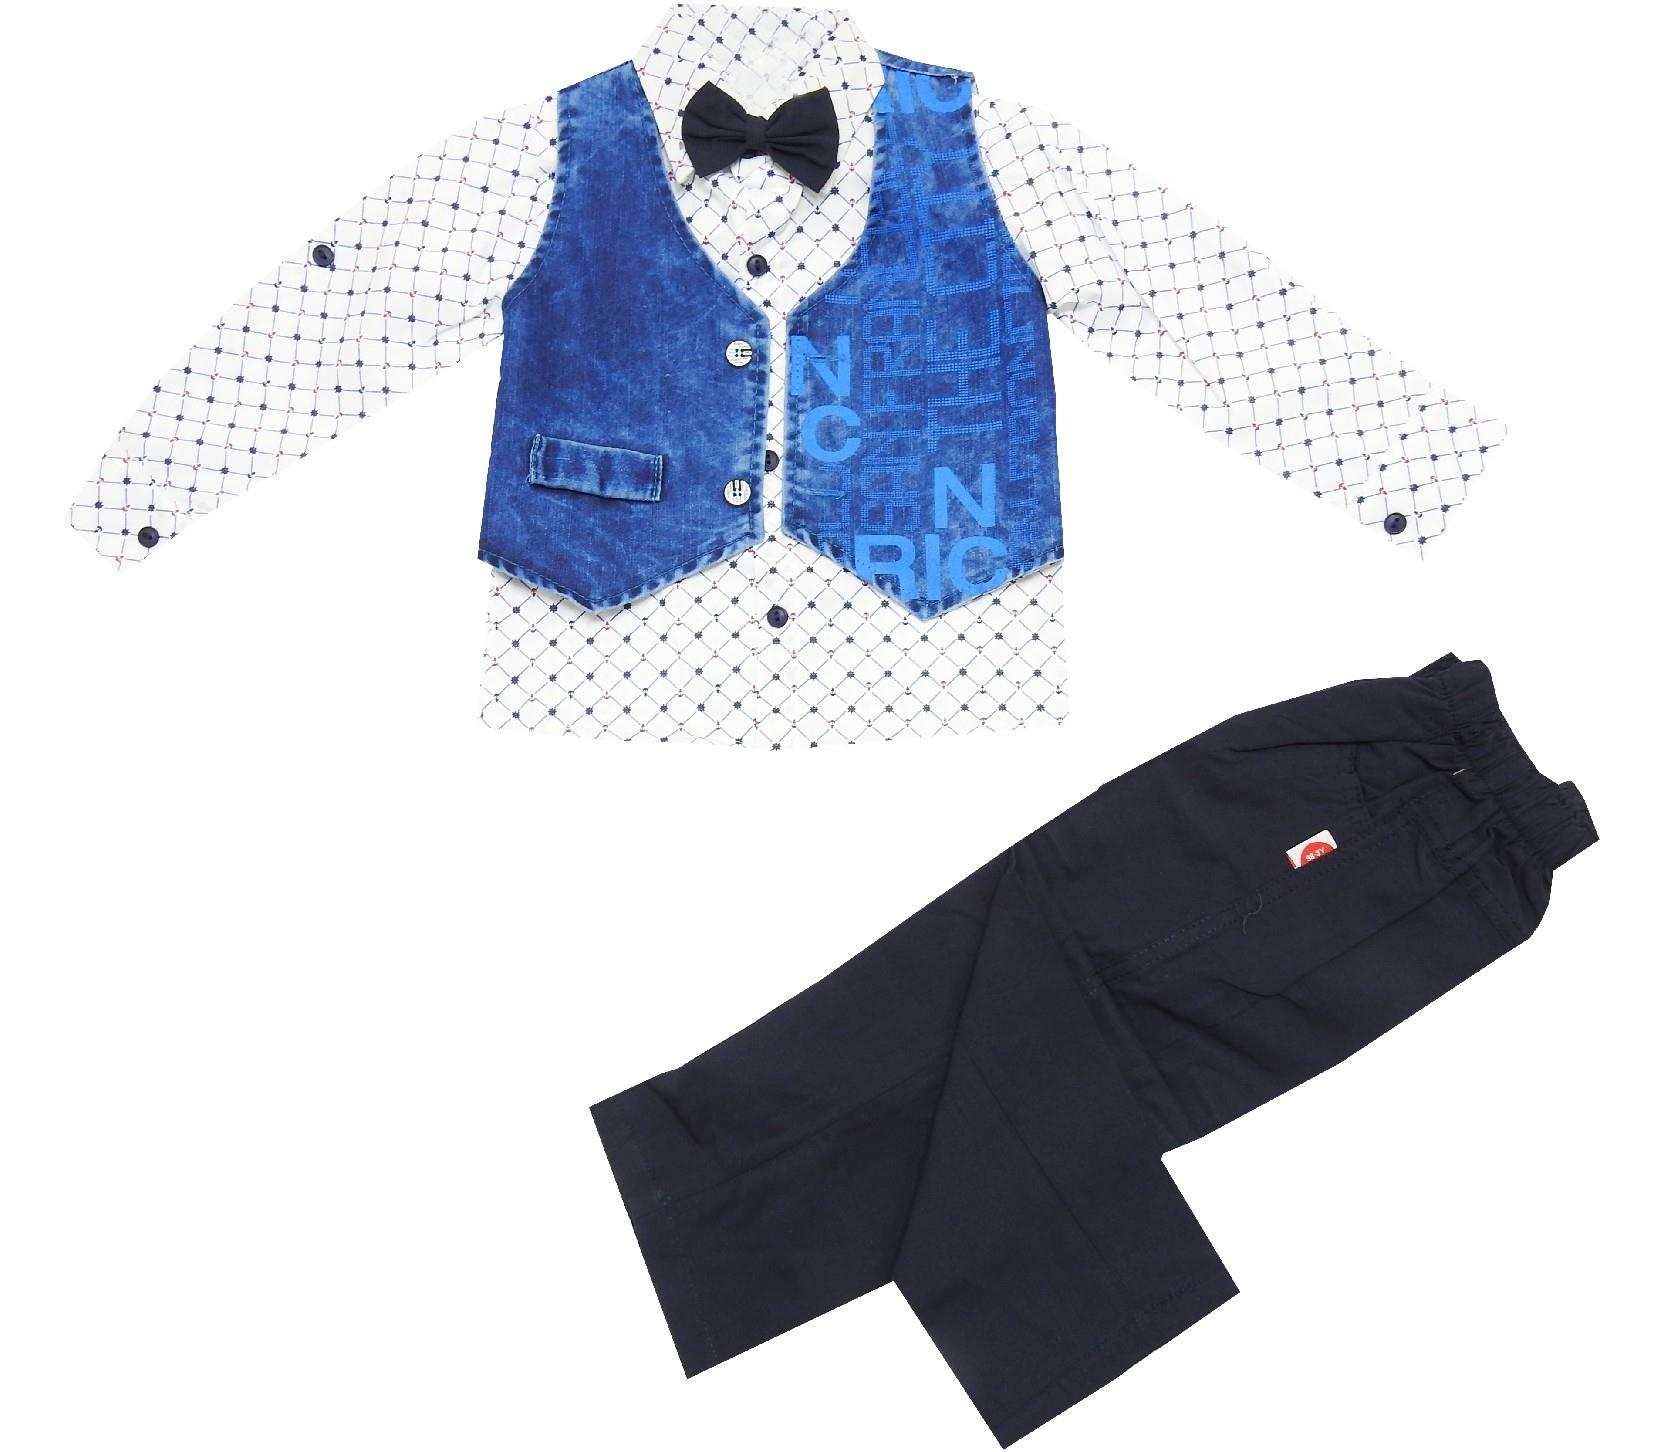 WRITENING DESIGNED JEANS WAIST, SHIRT AND TROUSER TRIPLE SET FOR BOY (1-2-3 AGE)